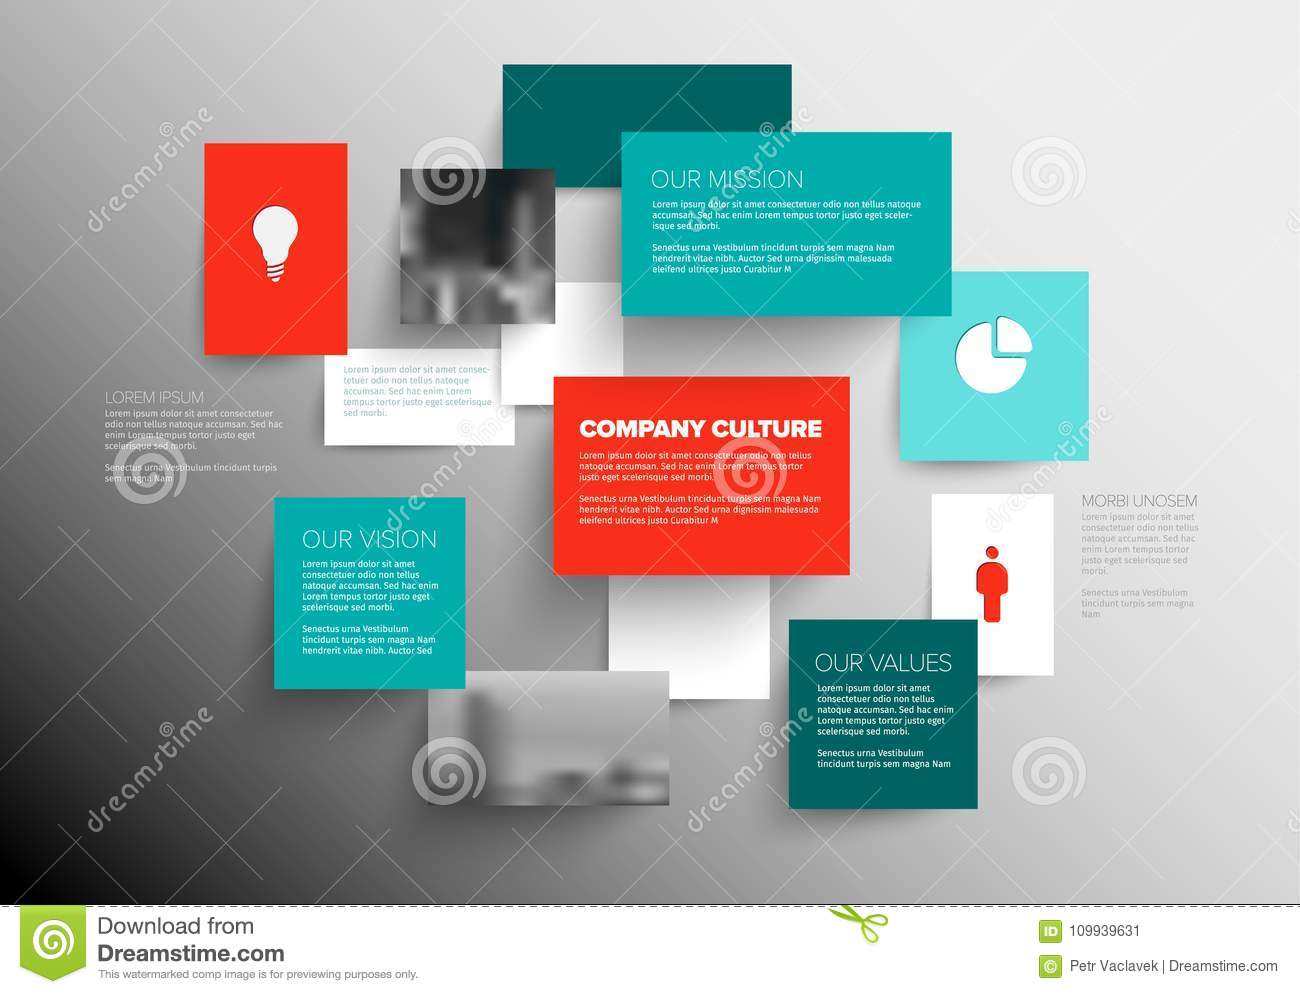 Mission, Vision And Values Diagram Stock Vector - Illustration of ...